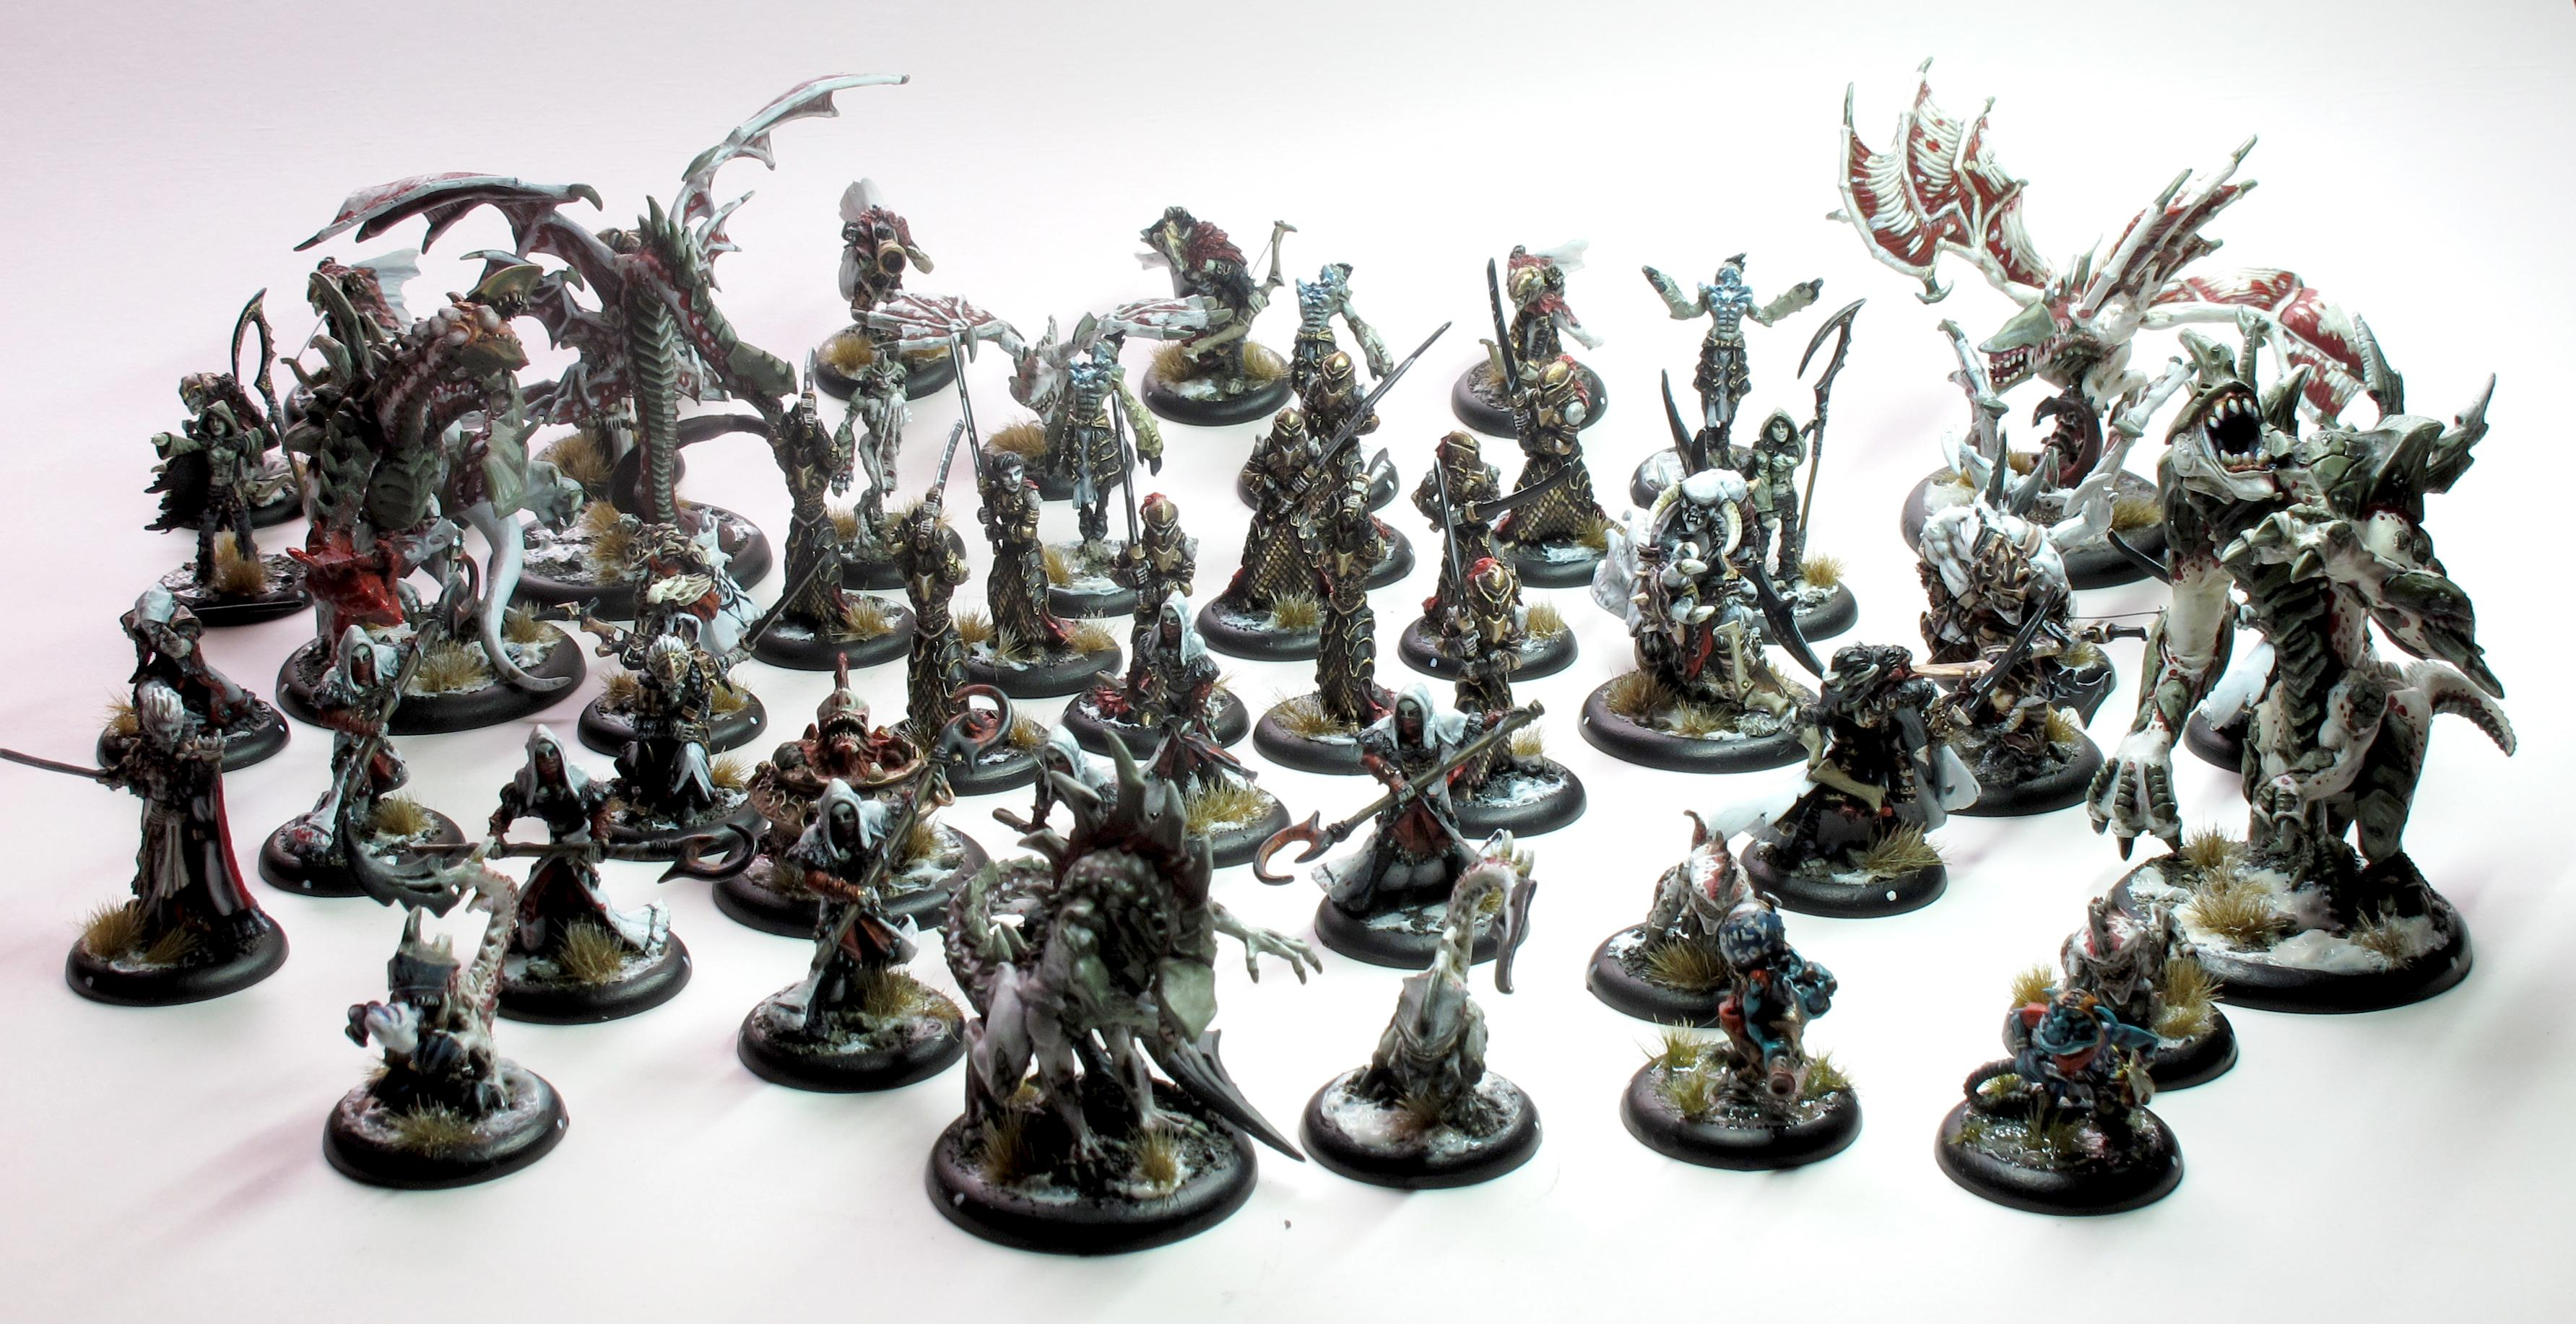 Legion, Legion Of Everblight, Lilith, Ravagore, Spawning Pool, Thagrosh